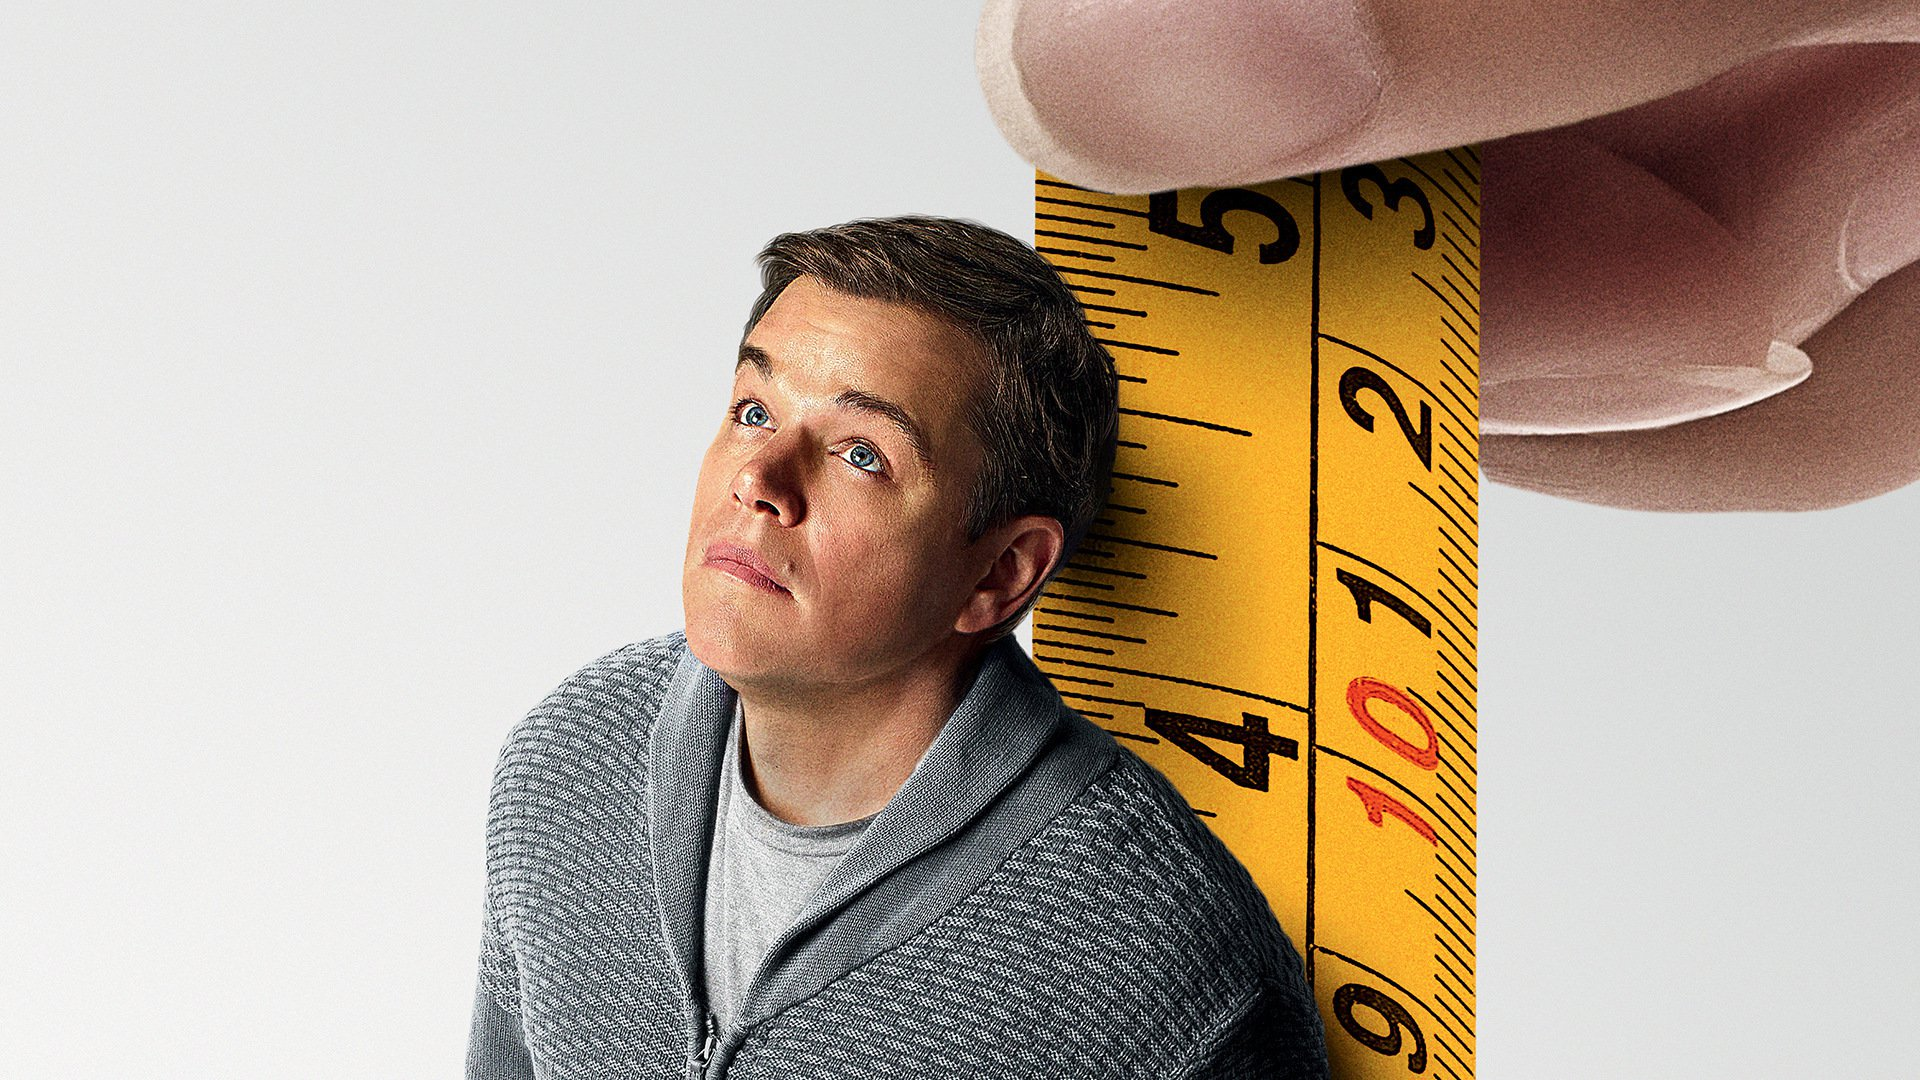 'backdrop-downsizing' from the web at 'http://tylermovies.com/wp-content/uploads/2017/11/backdrop-downsizing.jpg'